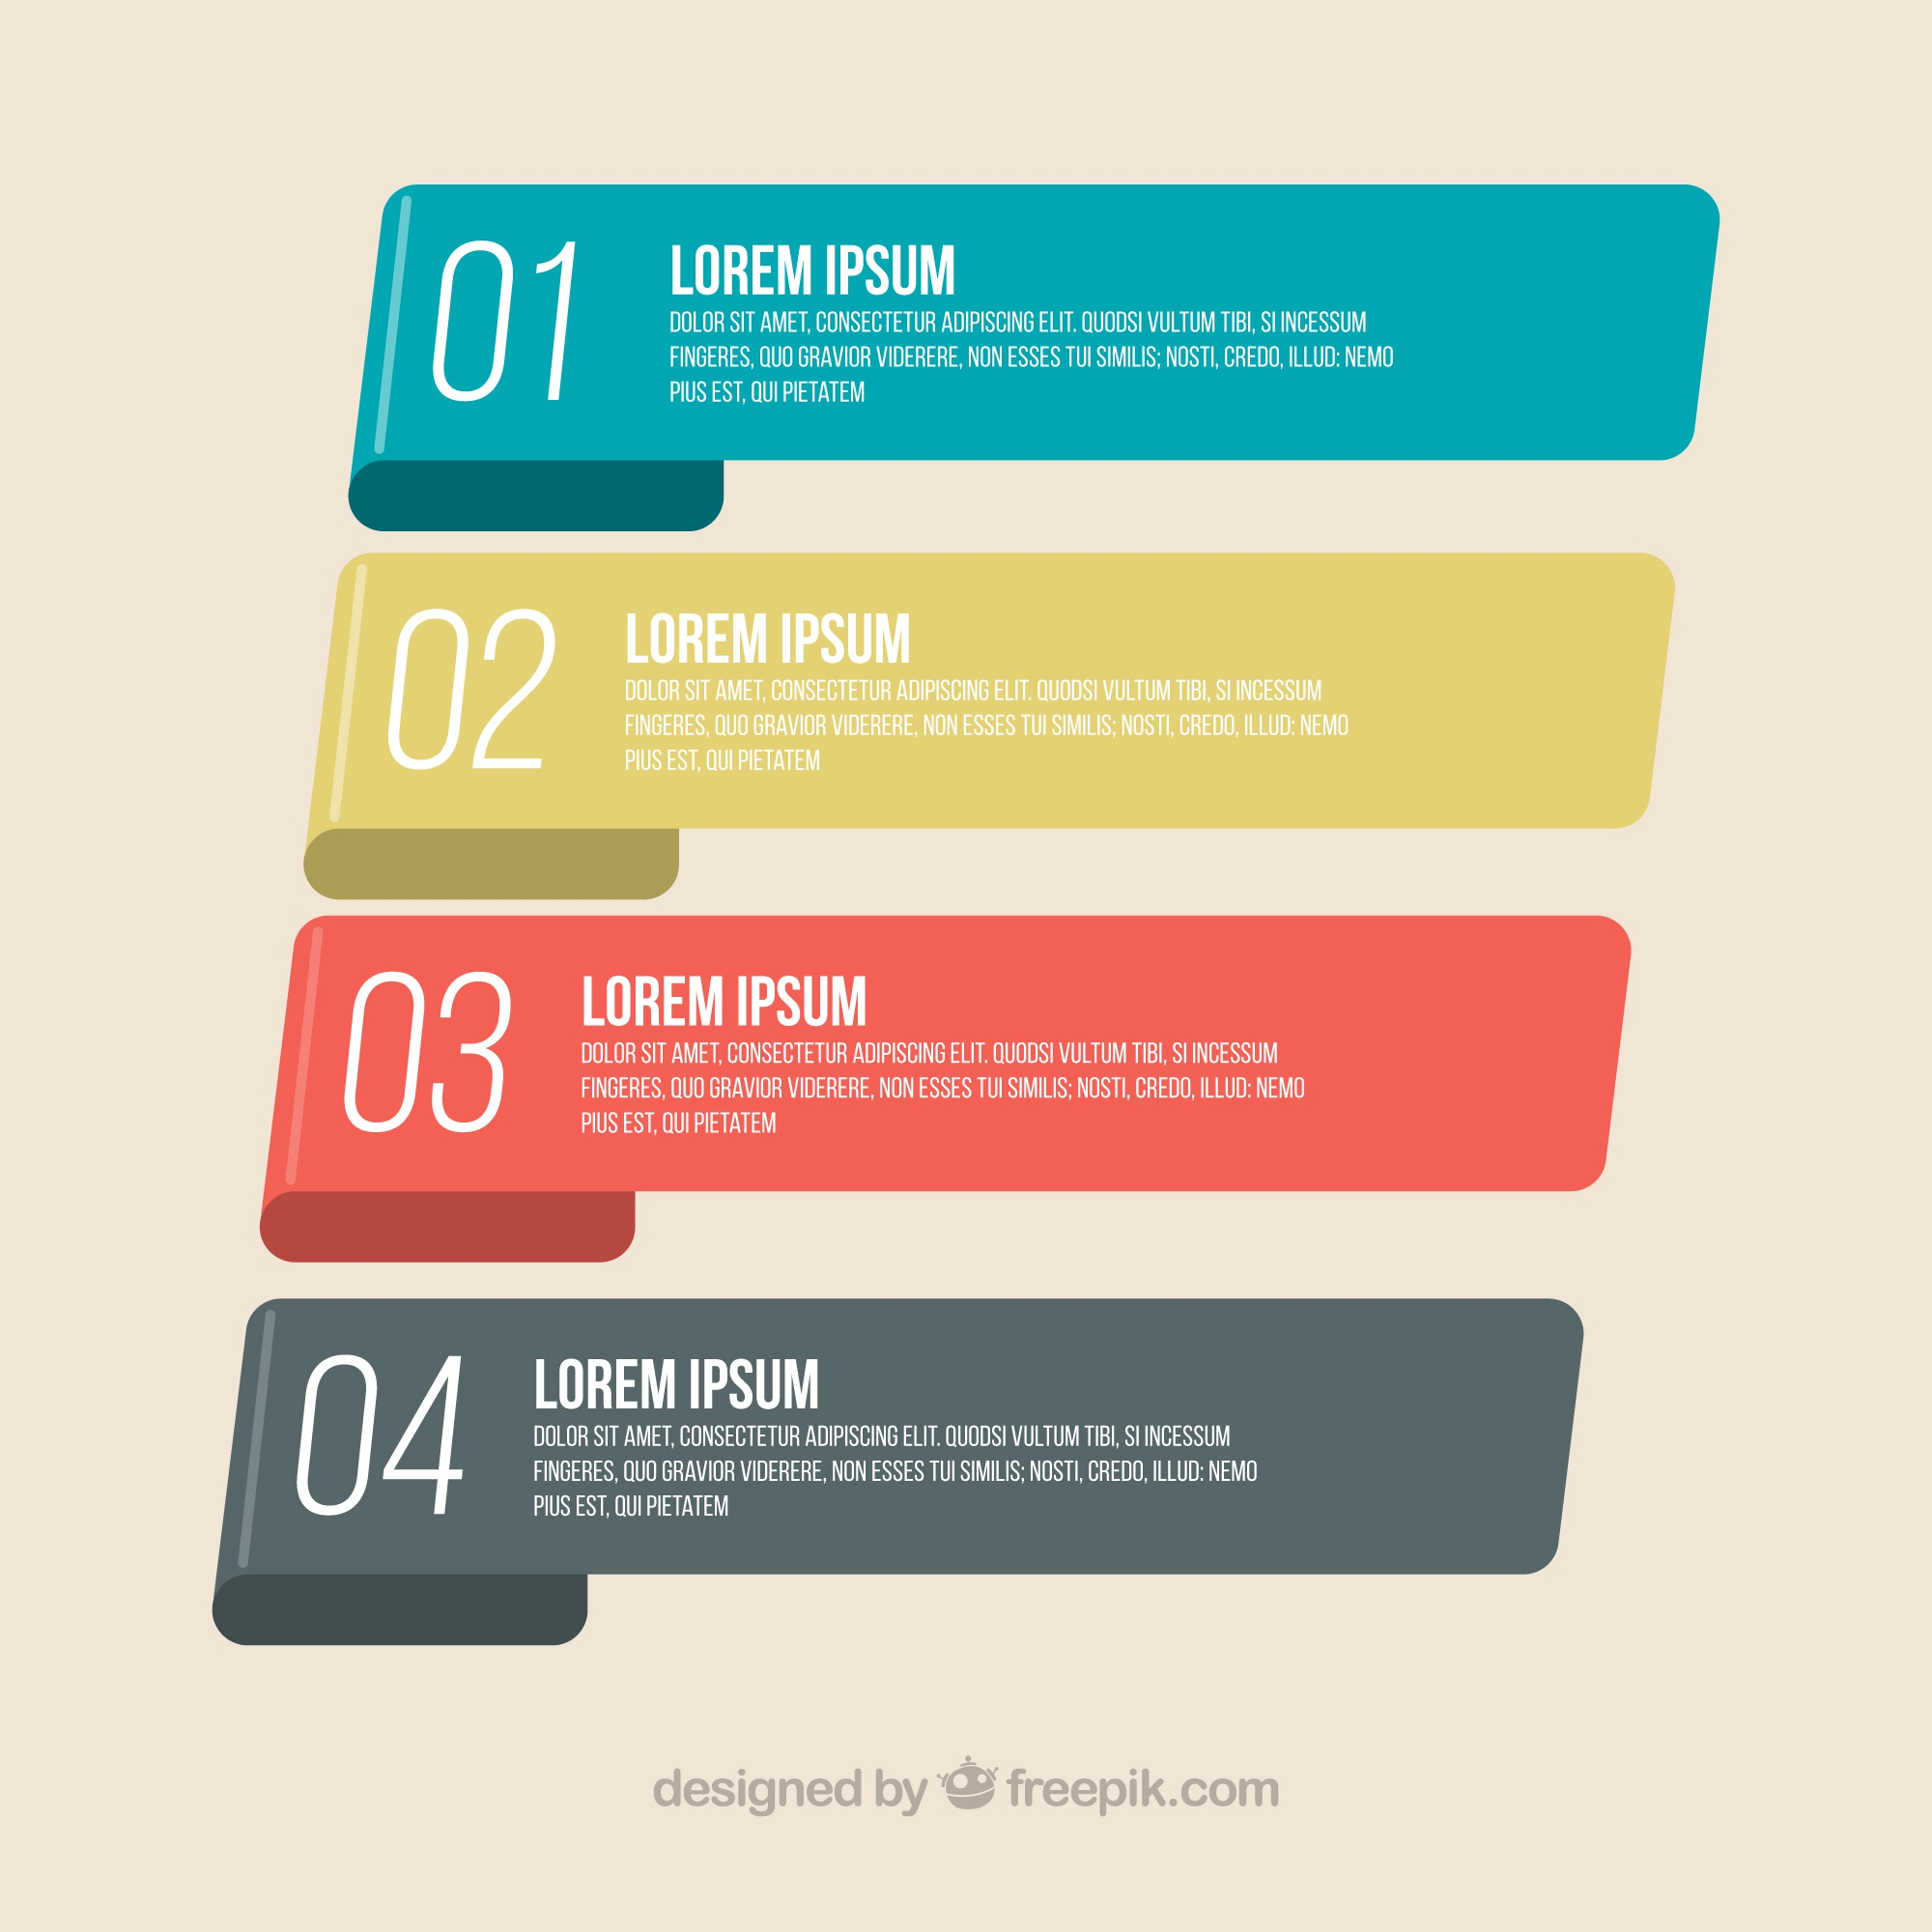 Infographic banners with classic design